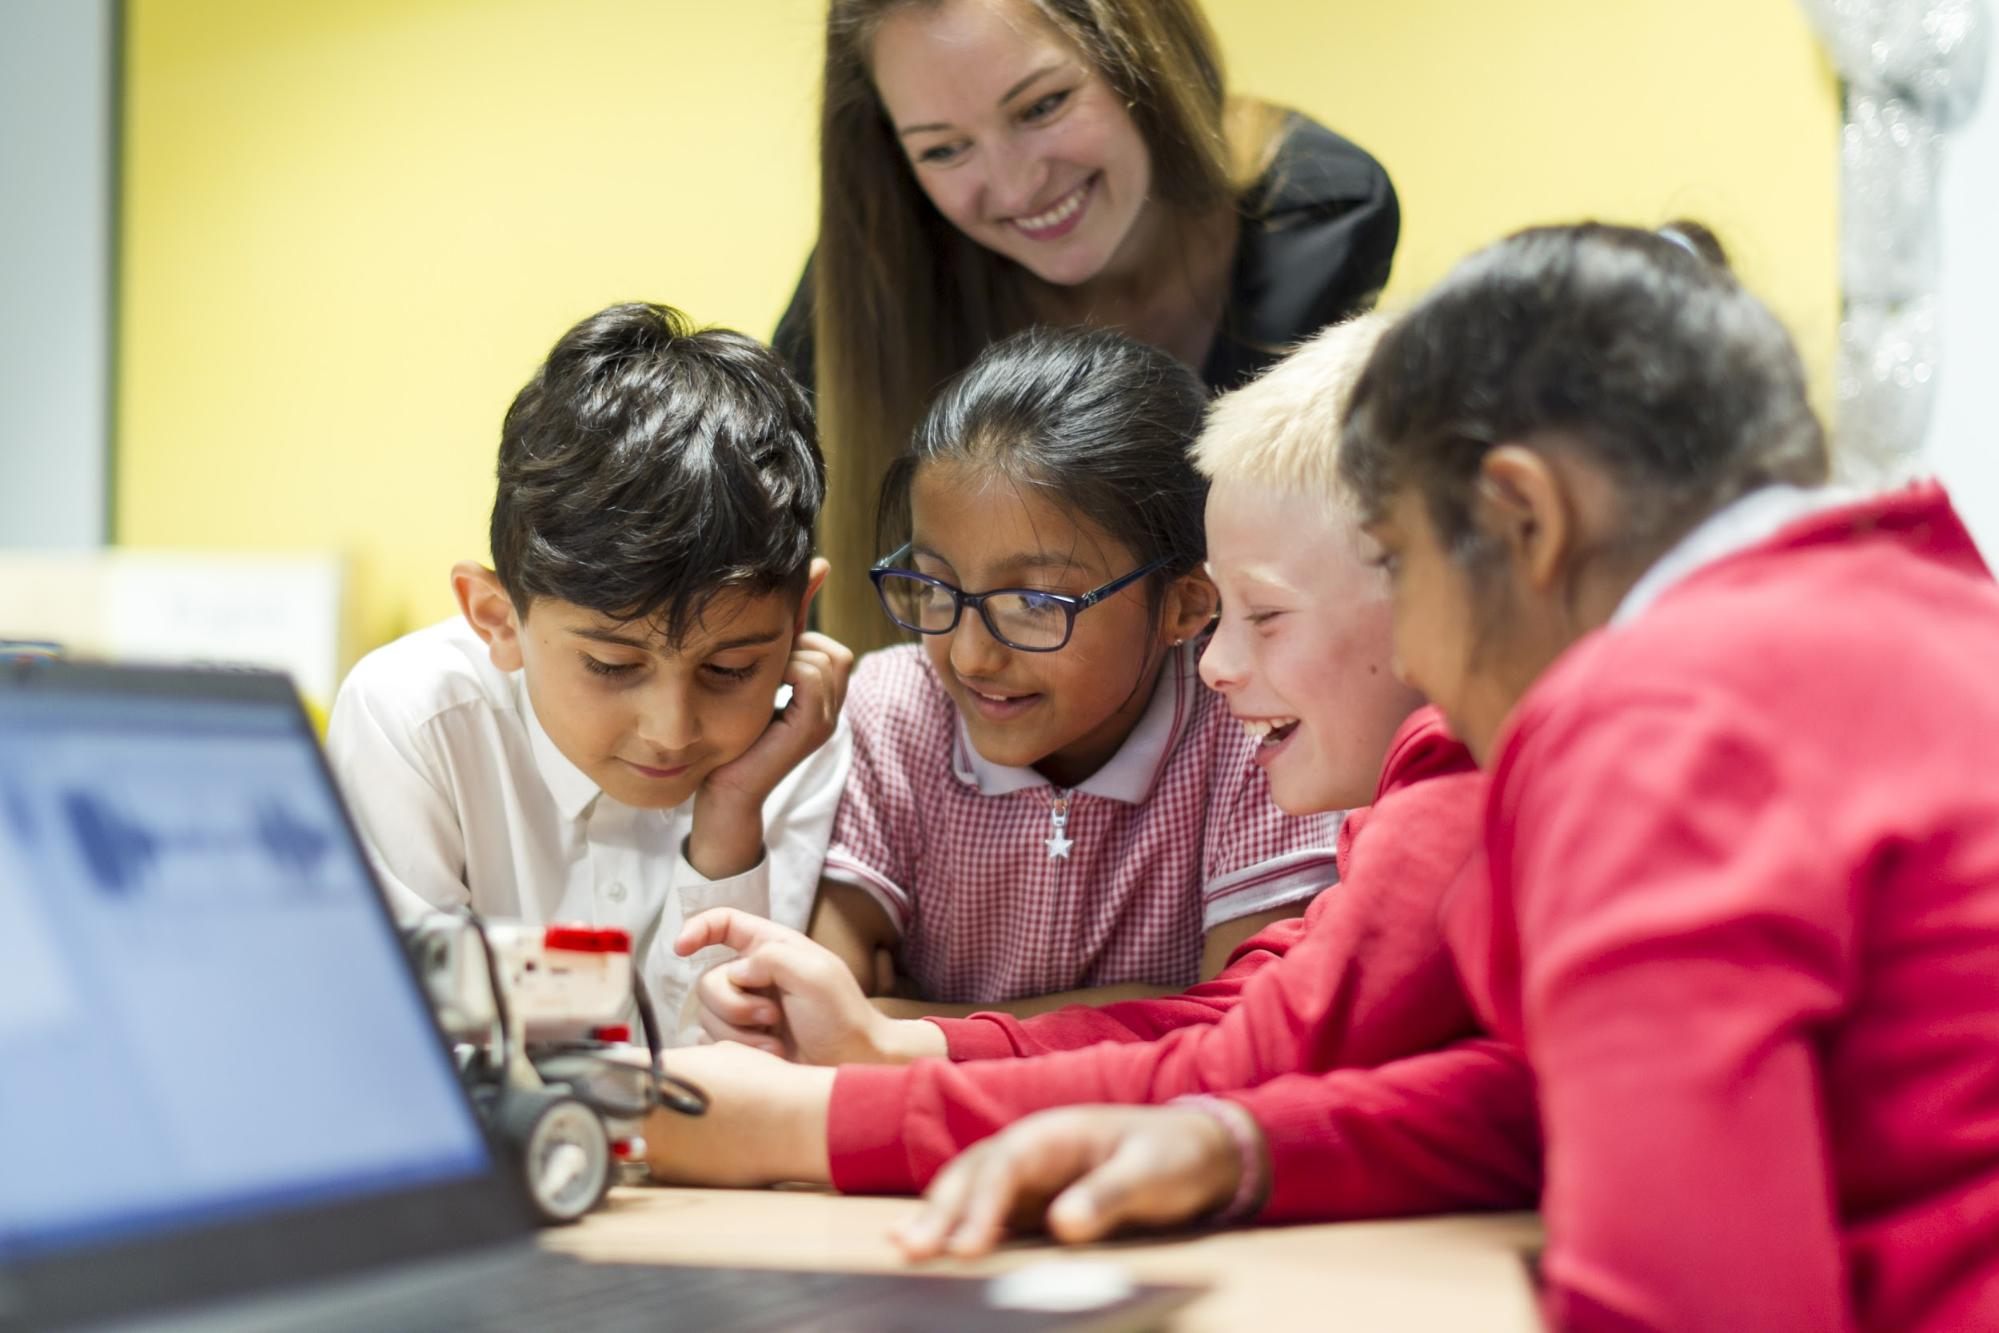 Woman teacher and young students at a computer